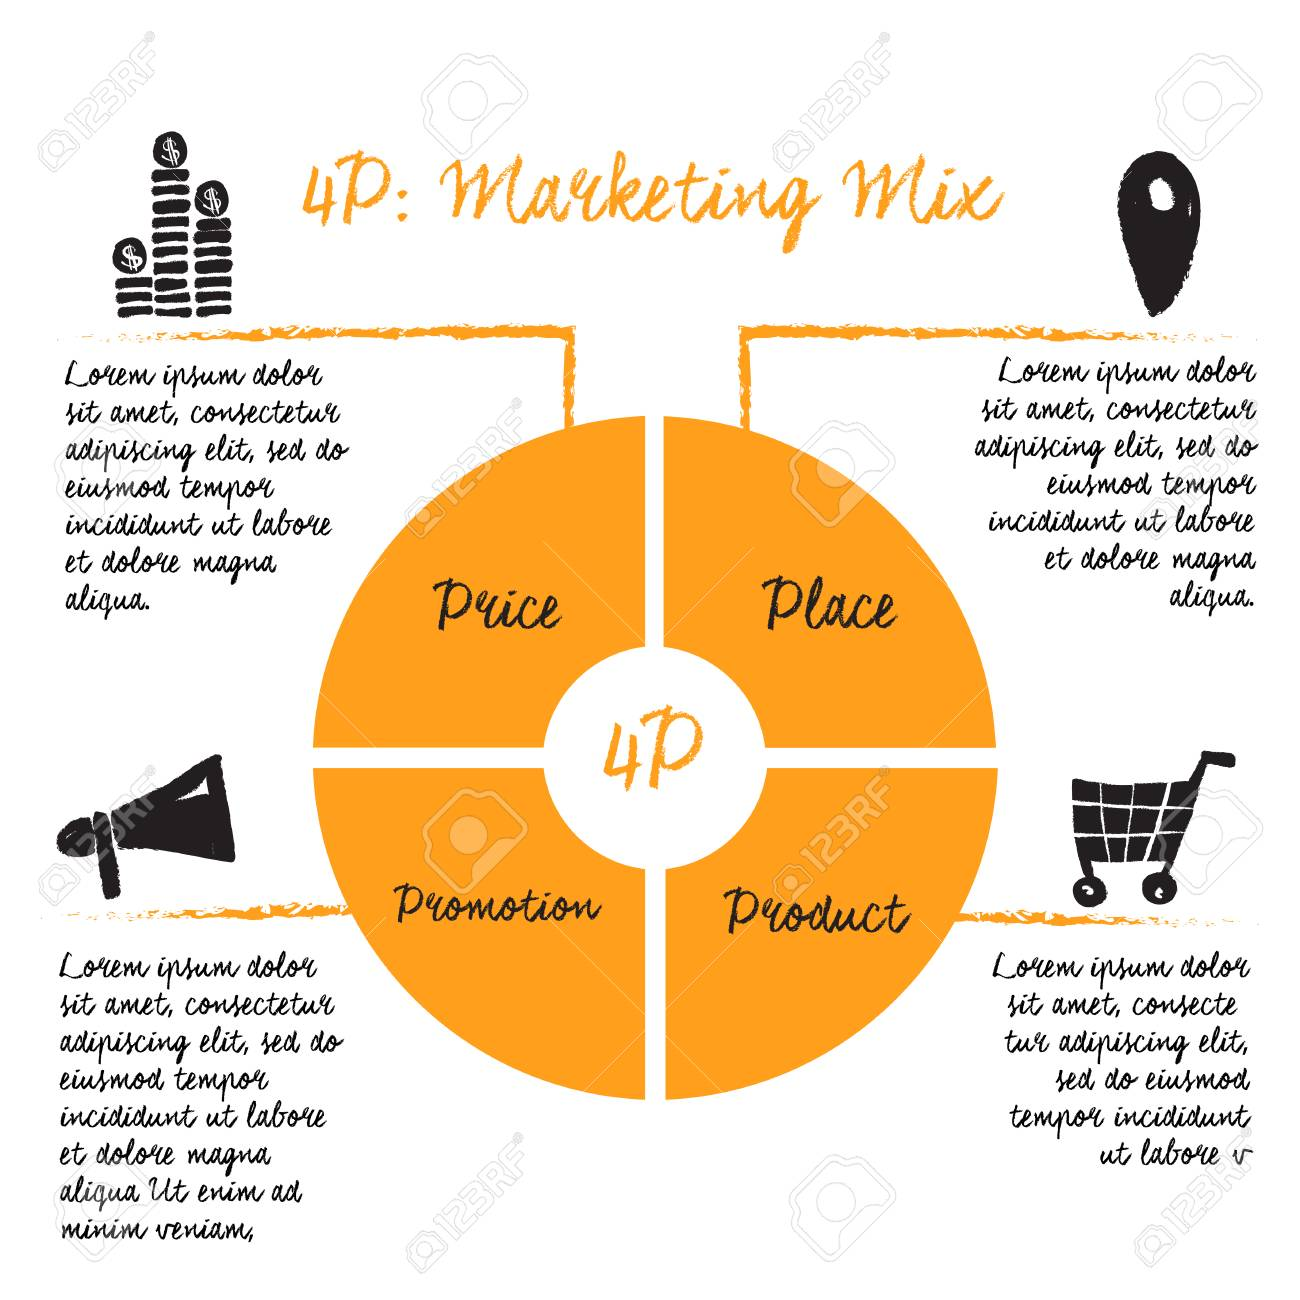 Elements of Marketing Mix- the 4 Ps